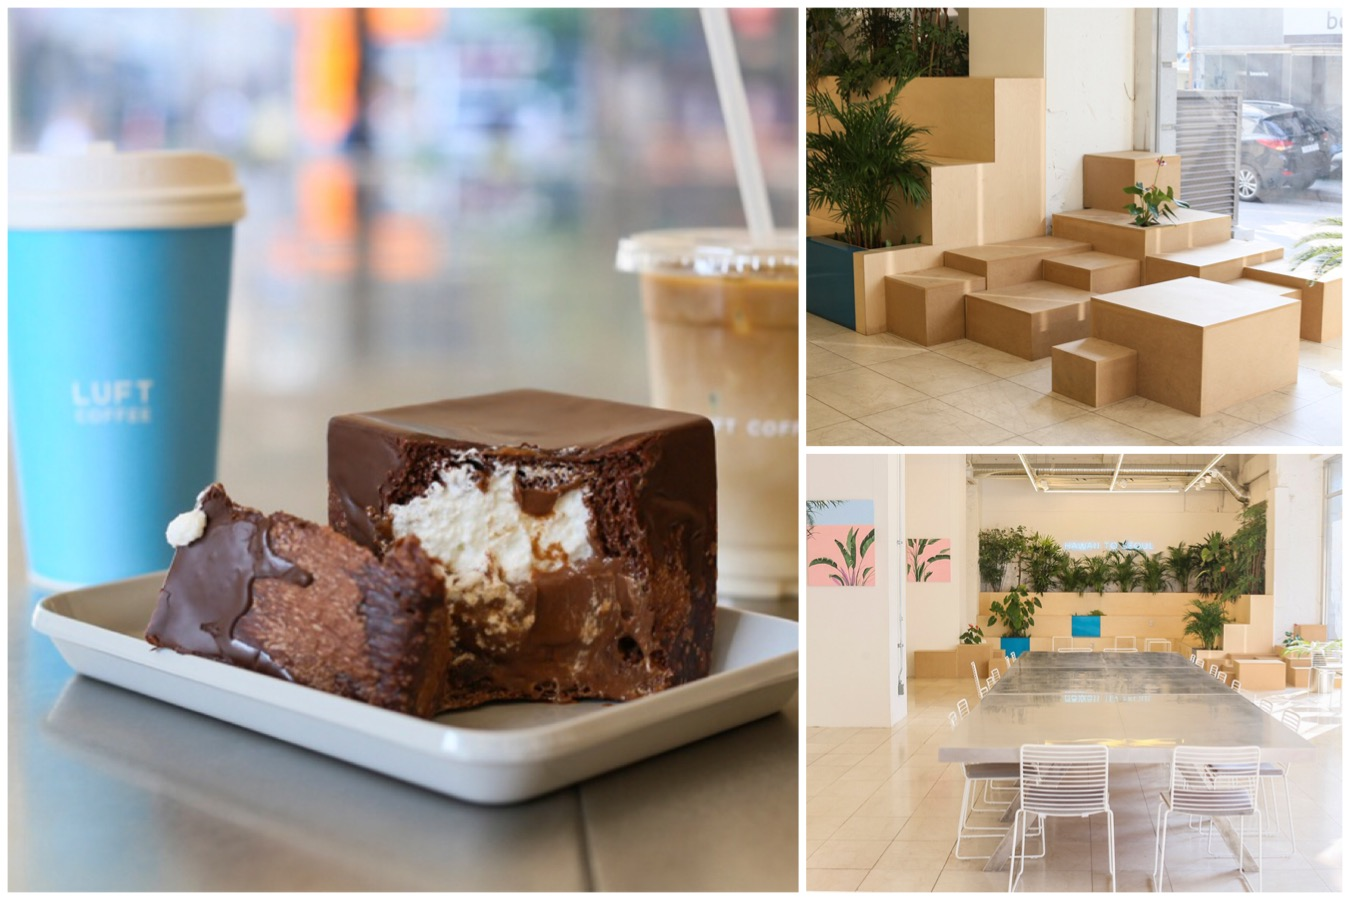 Luft Coffee - Minimalist Cafe With Hawaiian Concept In The Heart Of Myeongdong, Seoul